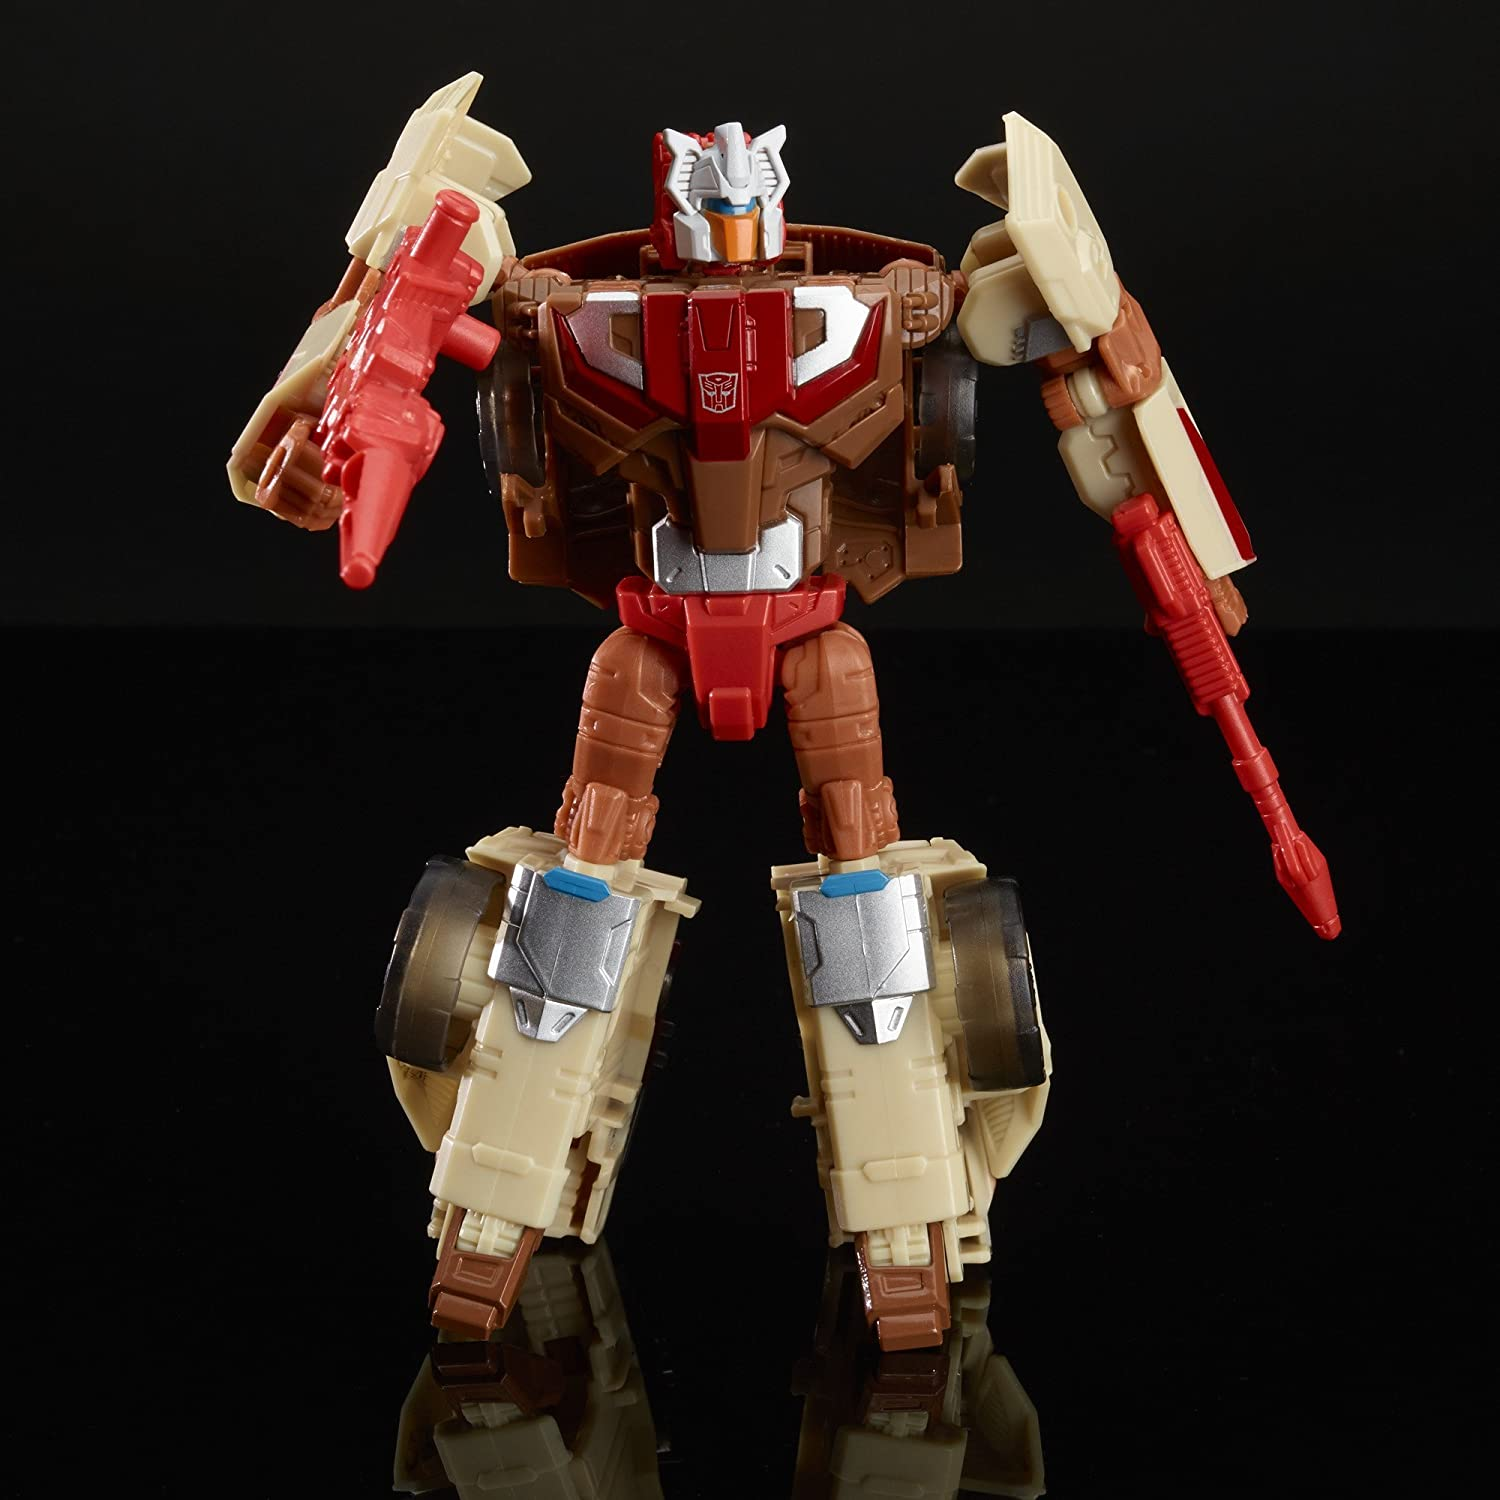 Transformers Generations Autobot Stylor and CHROMEDOME Action Figures Toy B7034 // B7762 Asst. Deluxe Class Titans Return